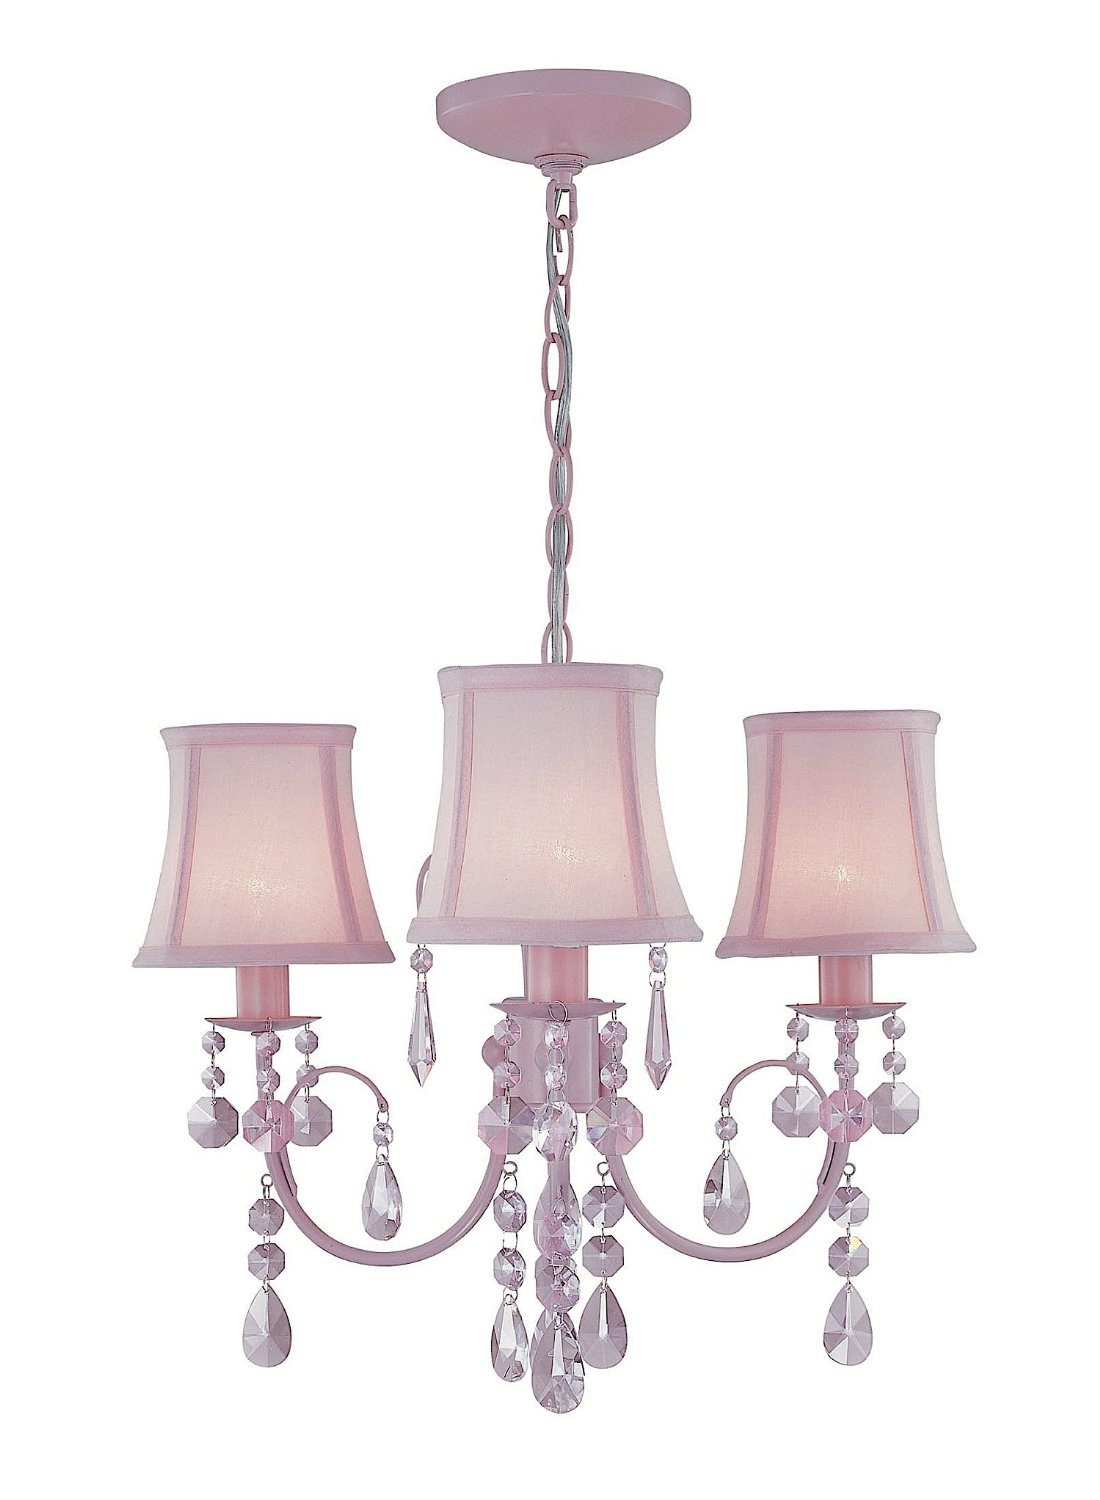 Pink Chandelier For Girls Room With Triple Lights